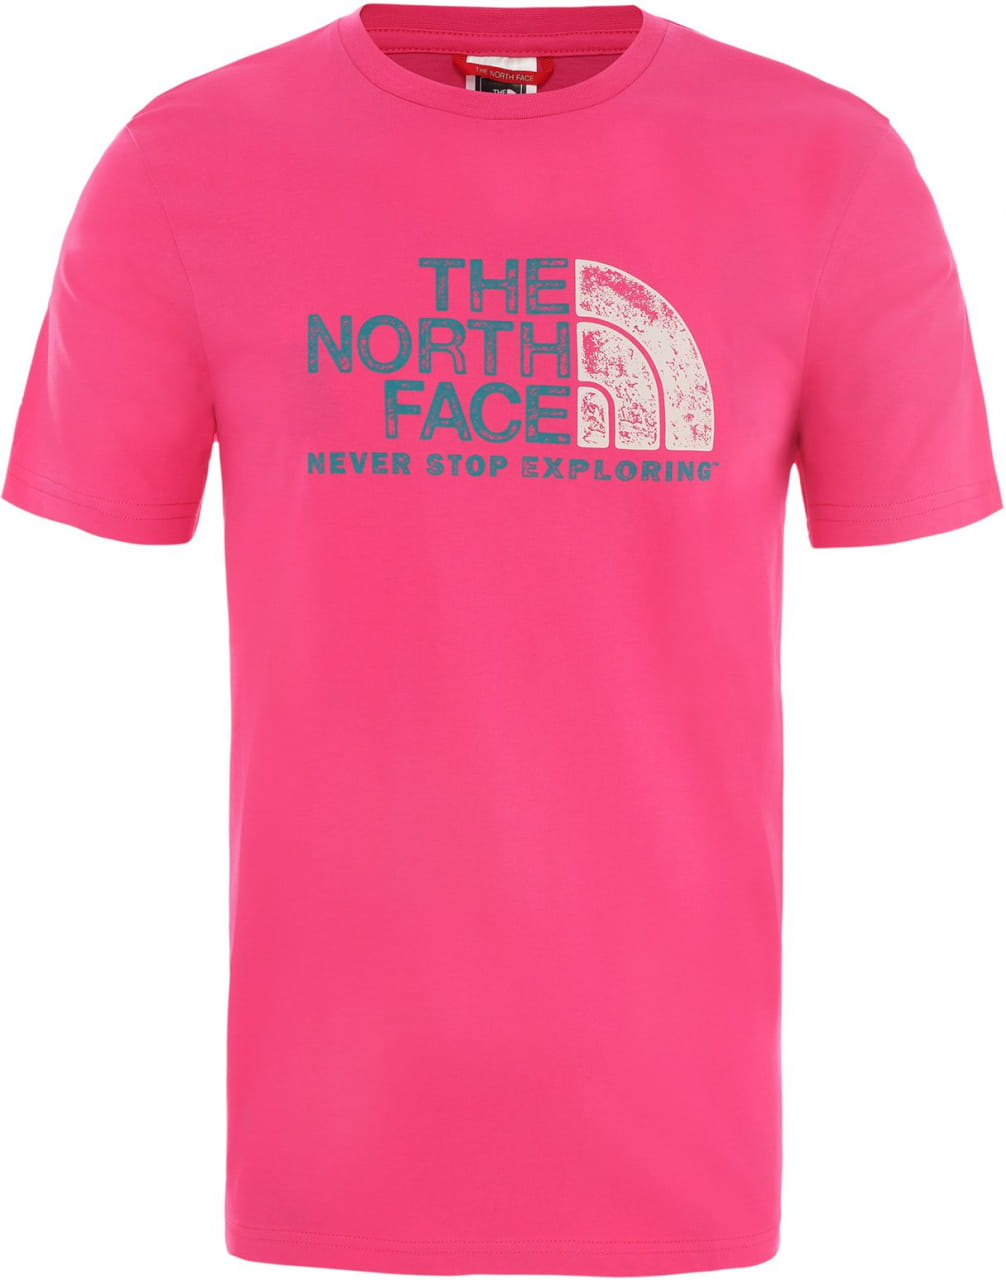 T-Shirts The North Face Men's Rust 2 T-Shirt